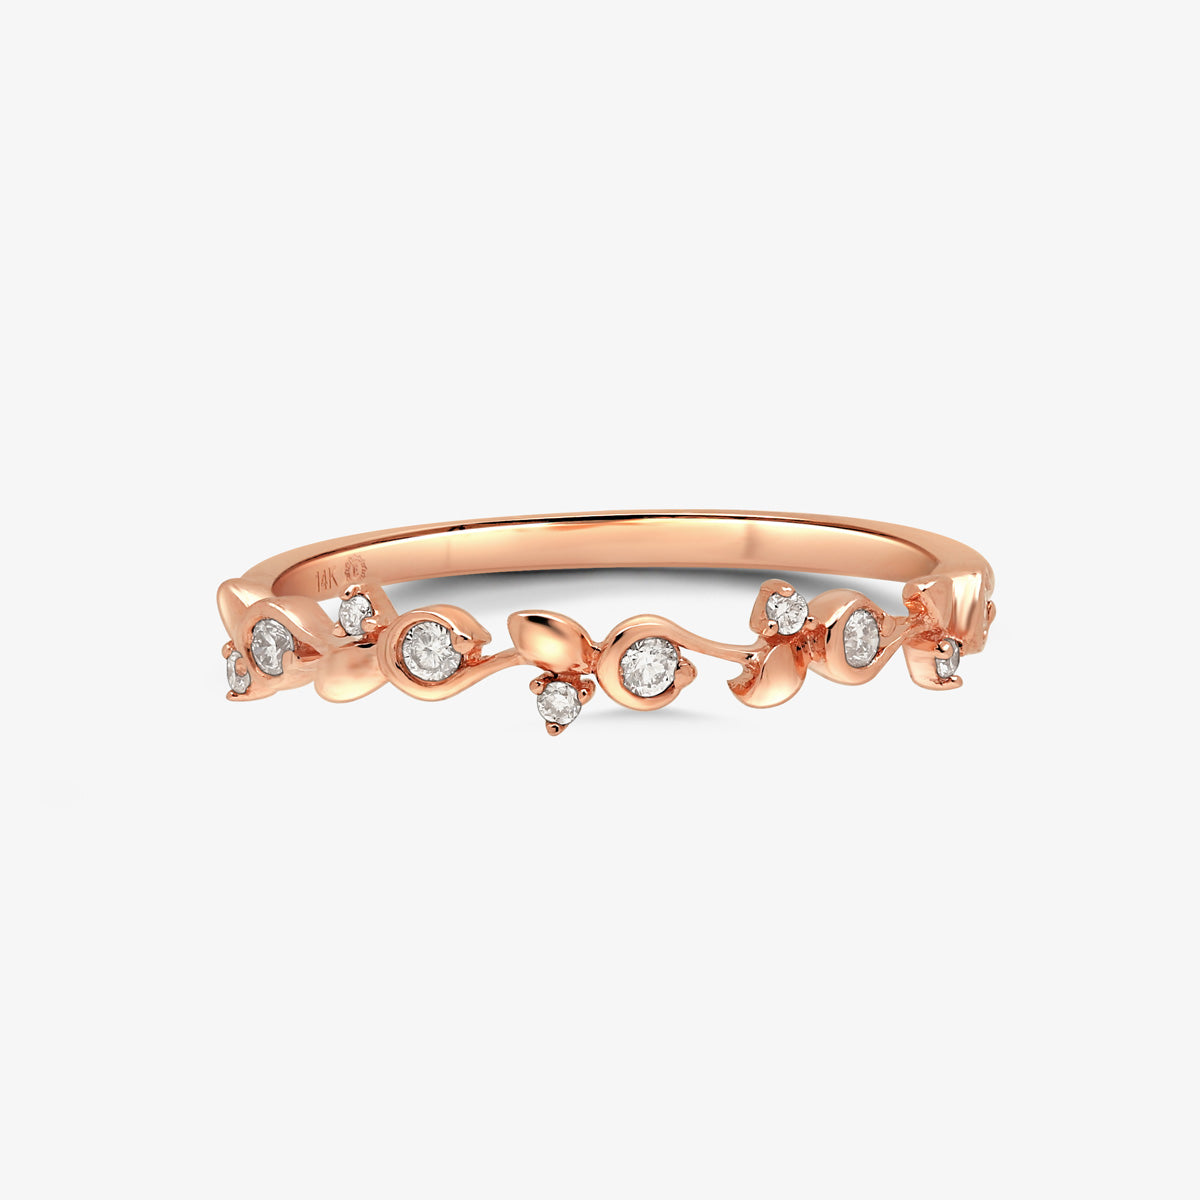 Organic Shaped Gold And Diamond Stacking Ring - estellacollection